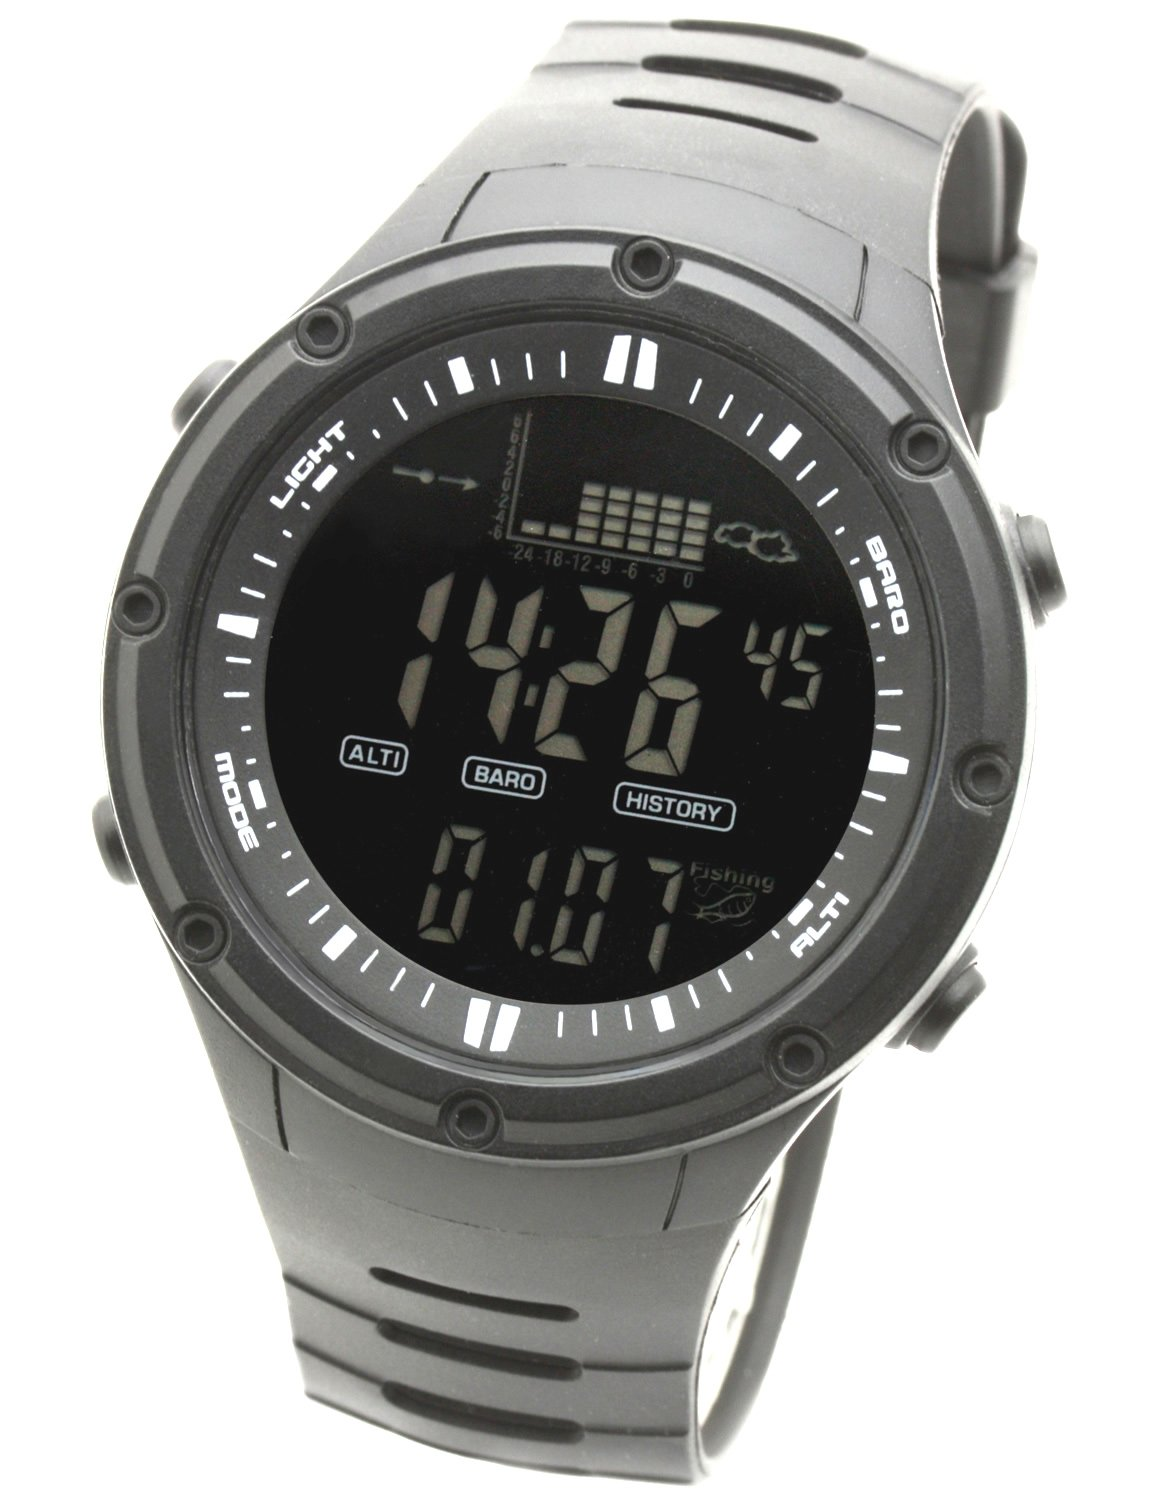 [Lad Weather] Fishing Storm Alarm Altimeter Barometer Chronograph Weather Forecast Men's Wrist Sports Watches